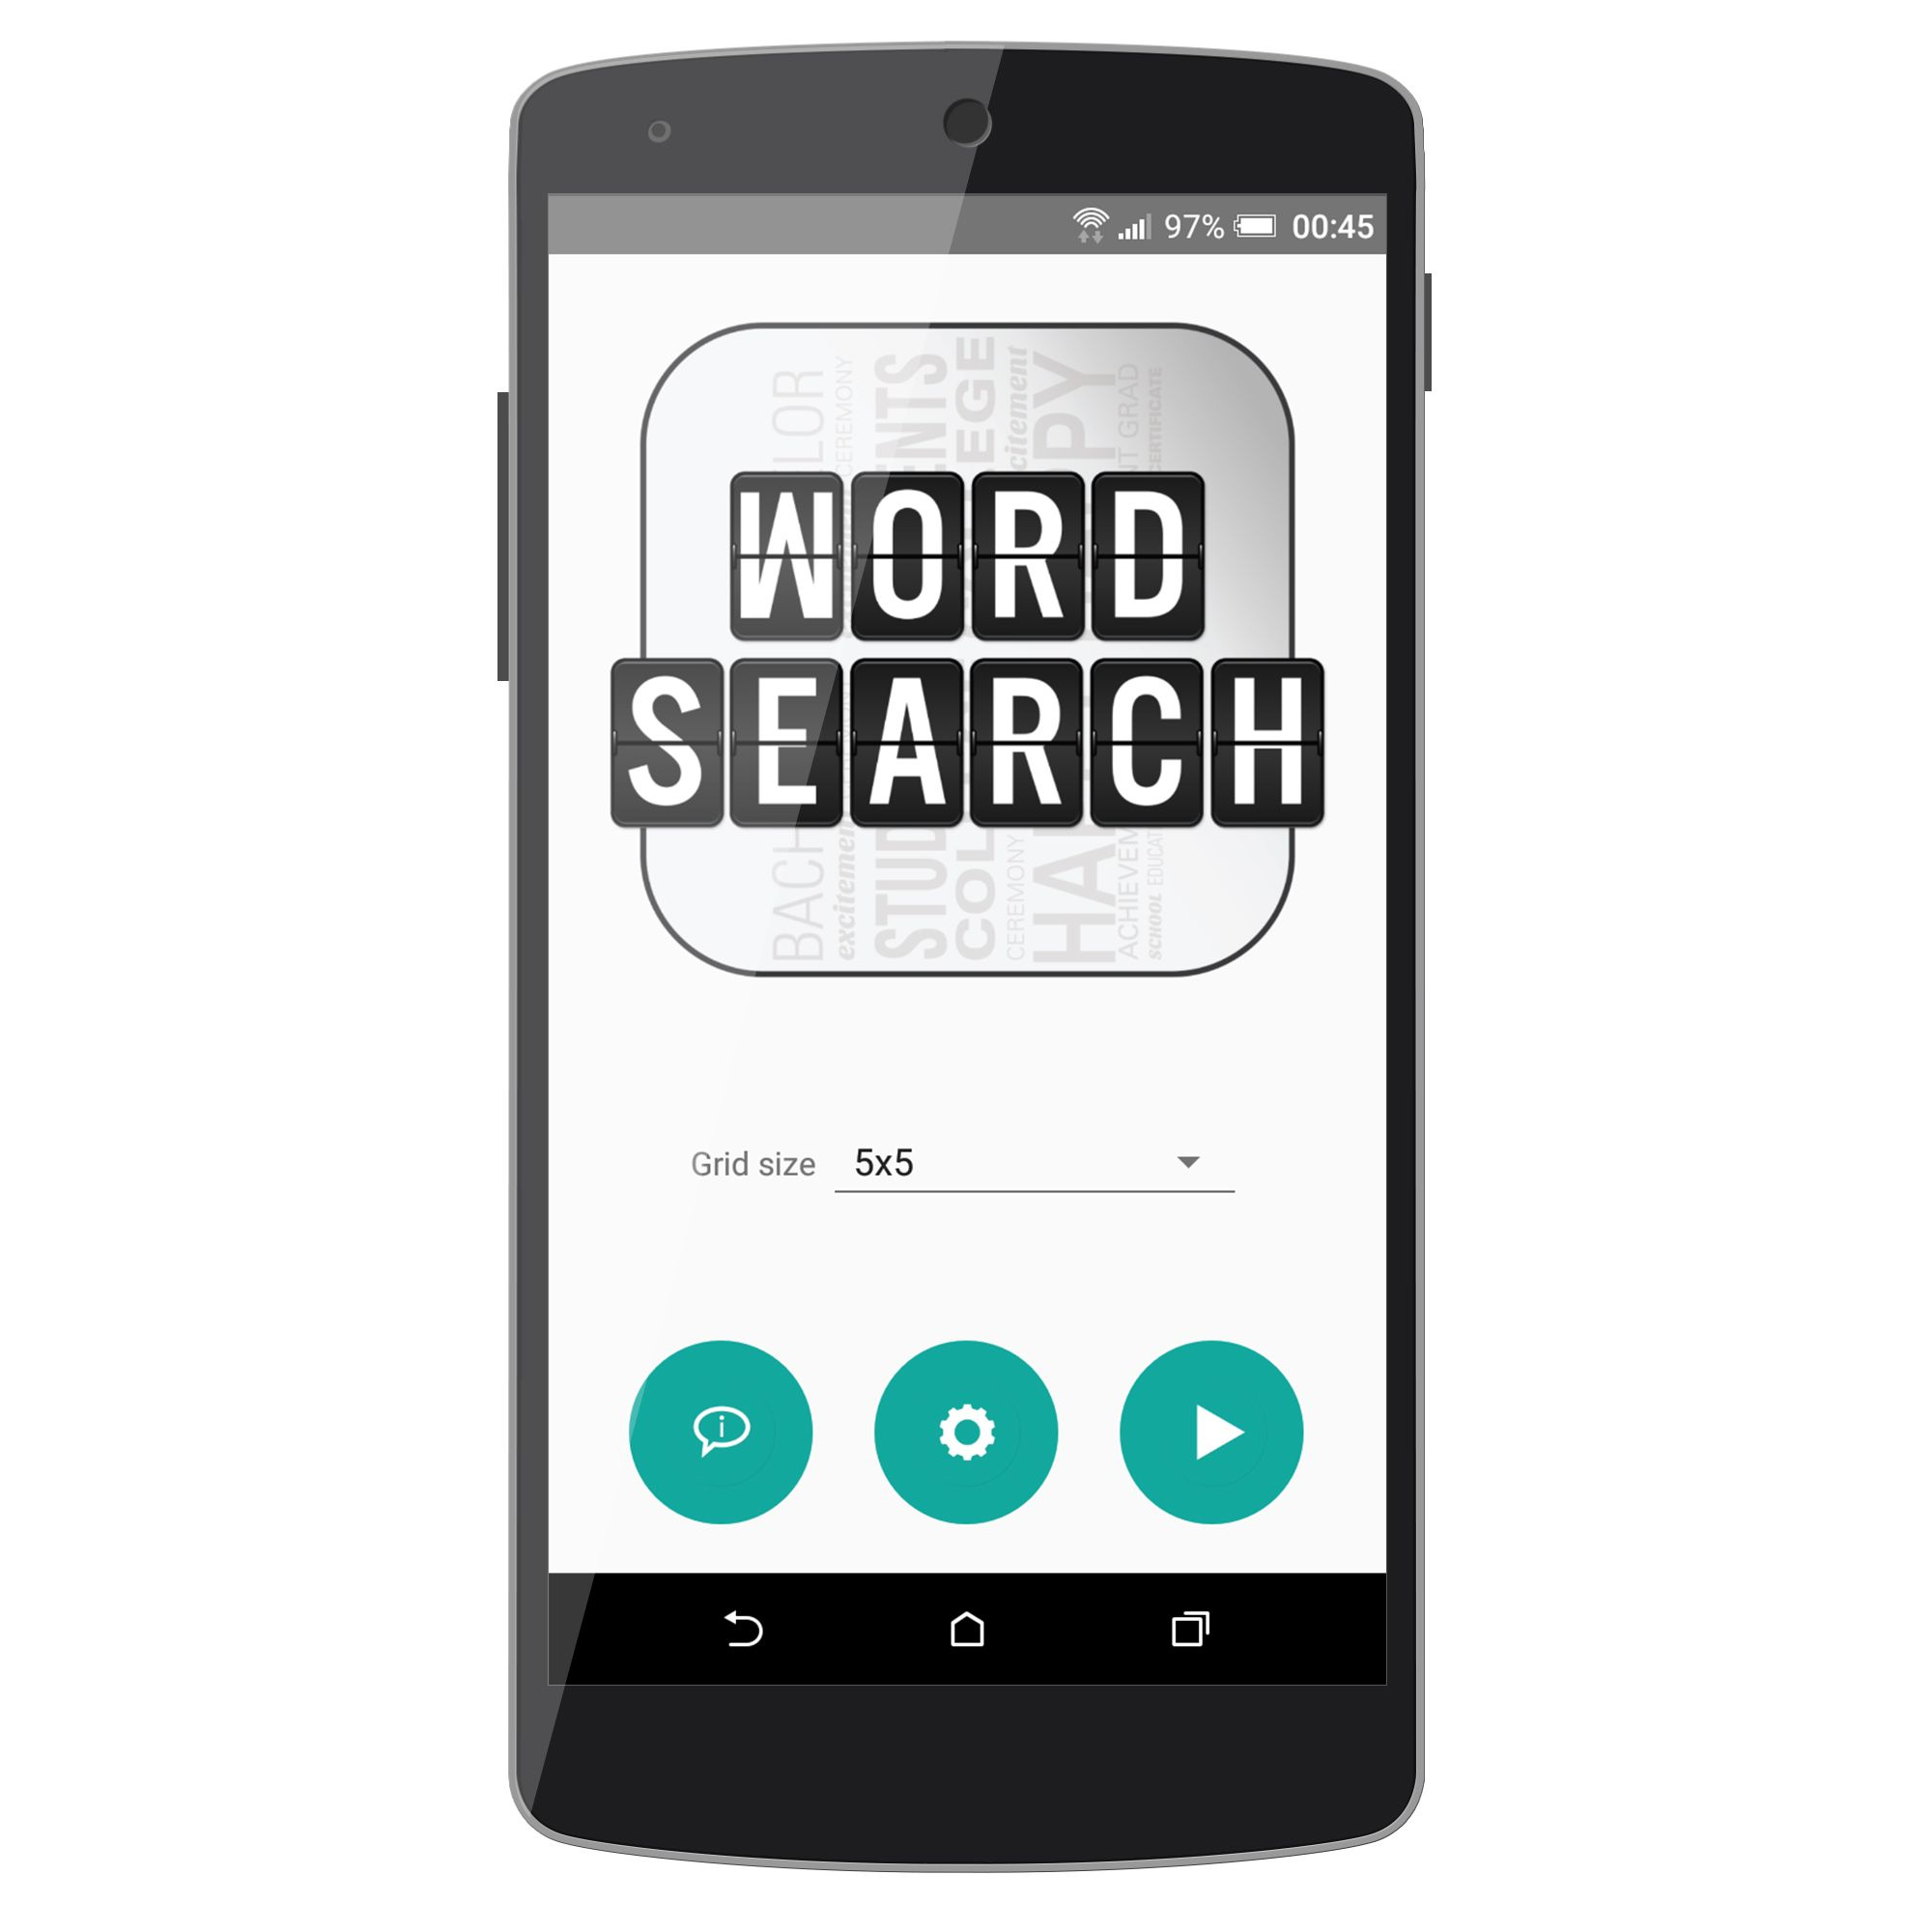 wordsearchscreenshot1